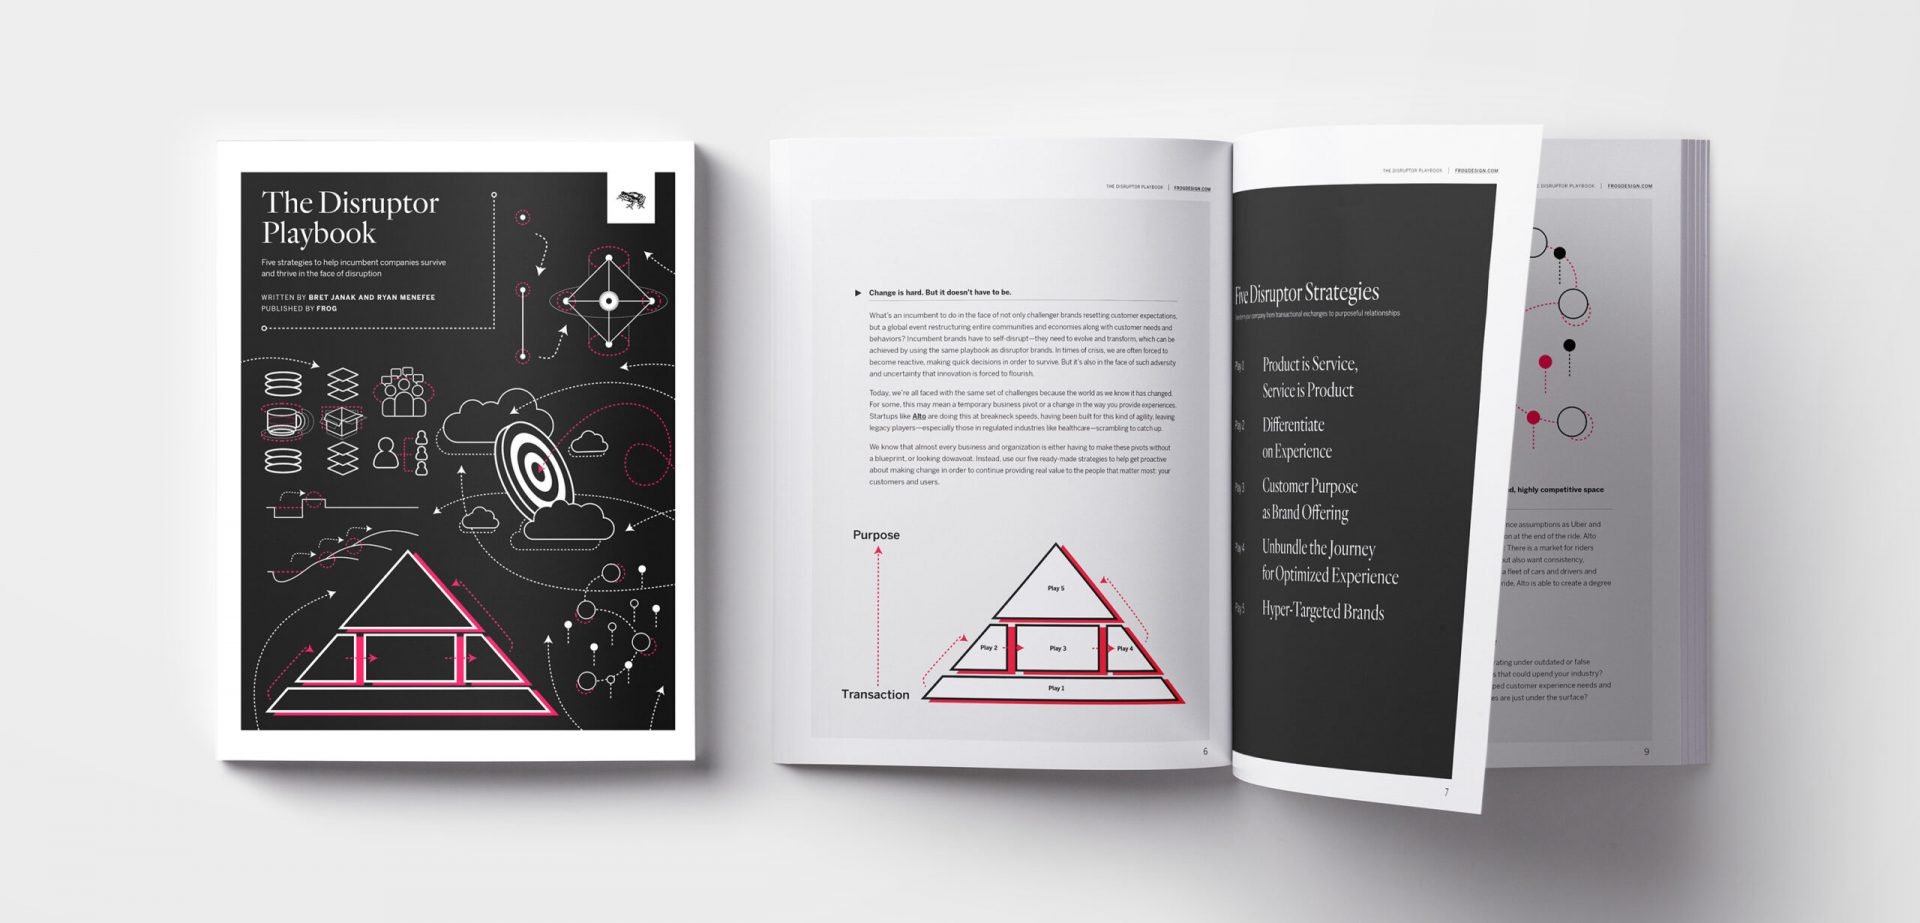 120_Disruptor-Playbook-openspread-cover